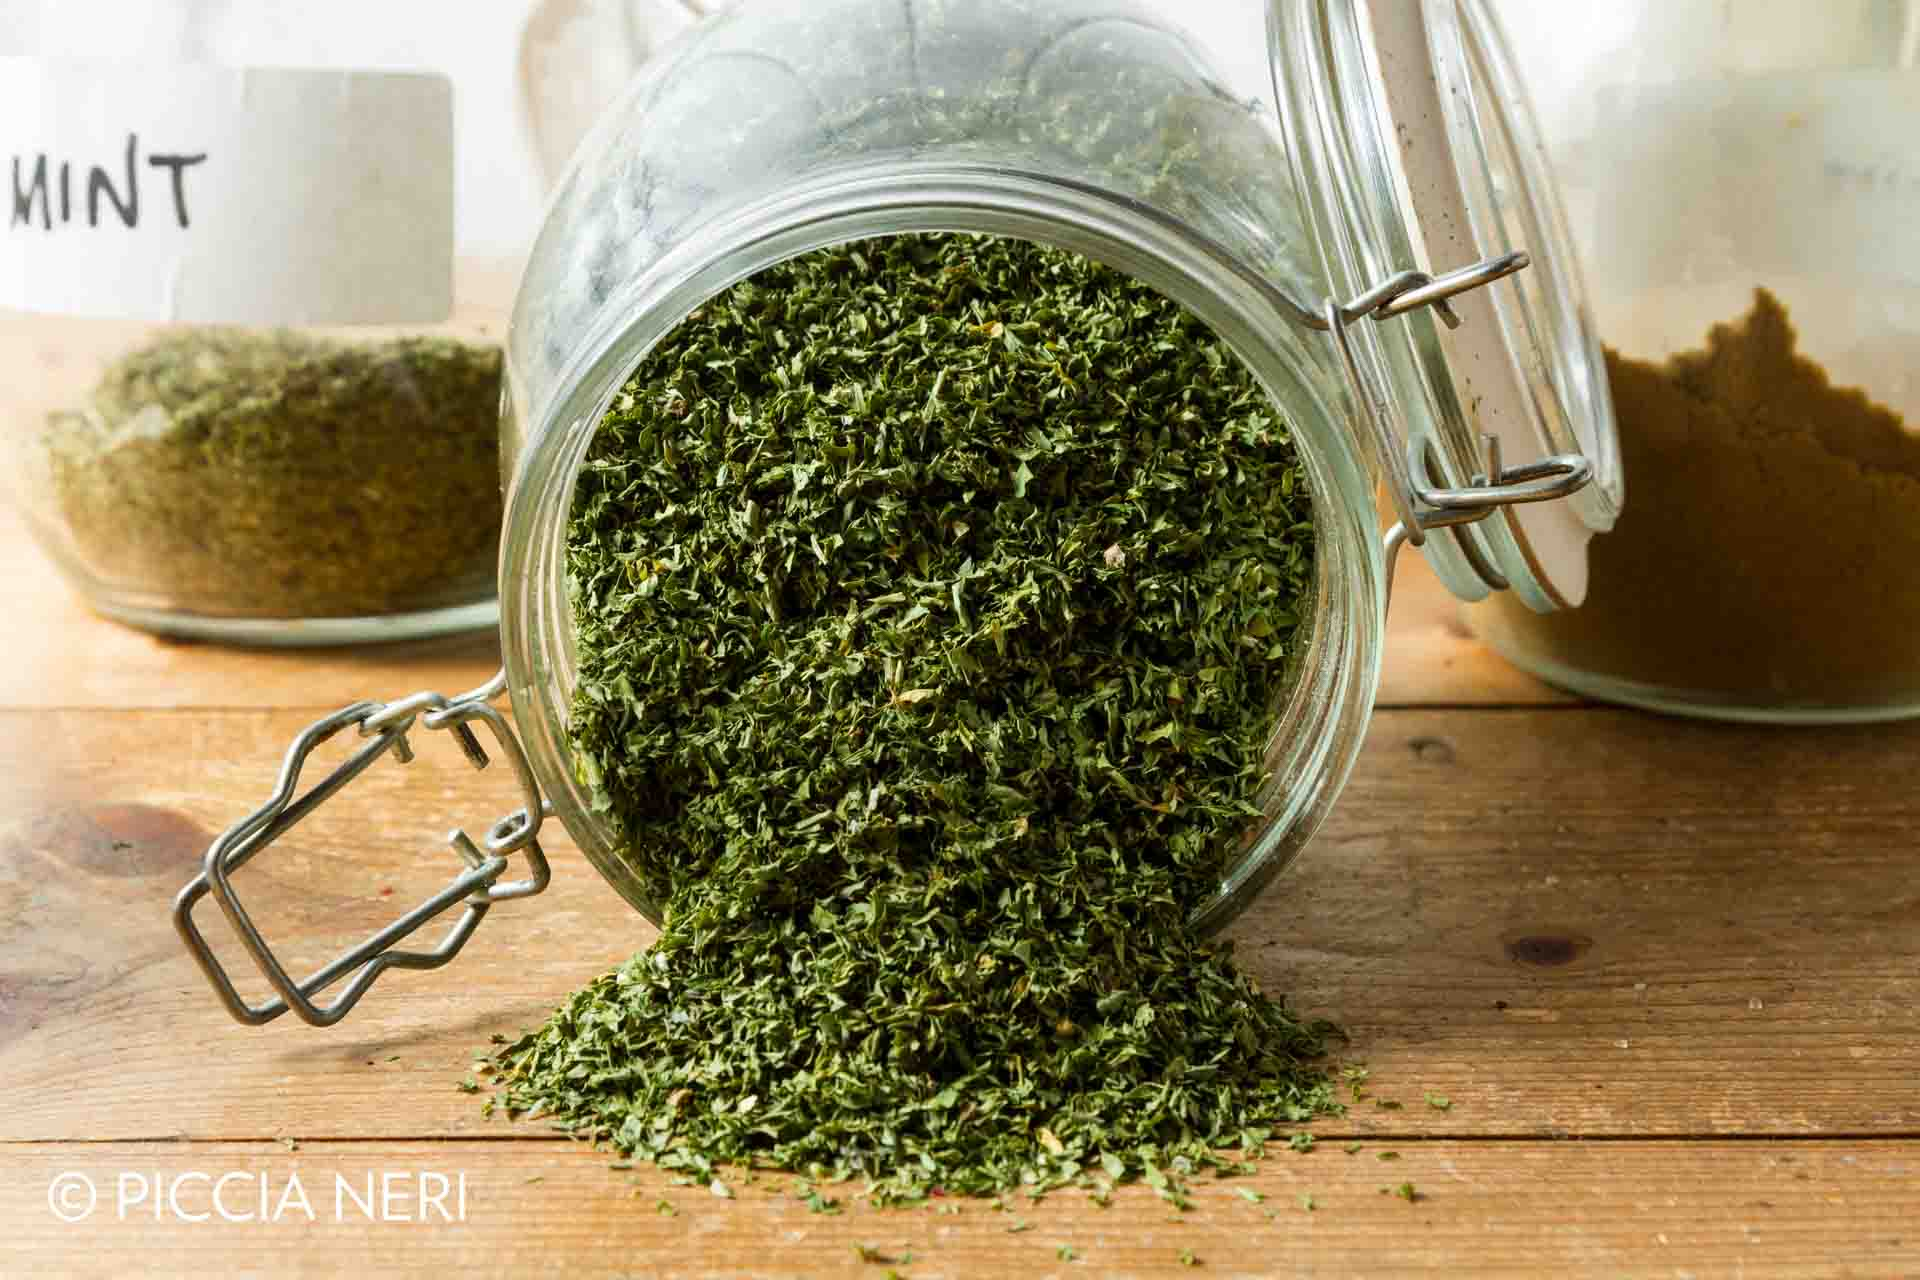 Middle Eastern cuisine: a jar of dried parsley with other herbs in the background.